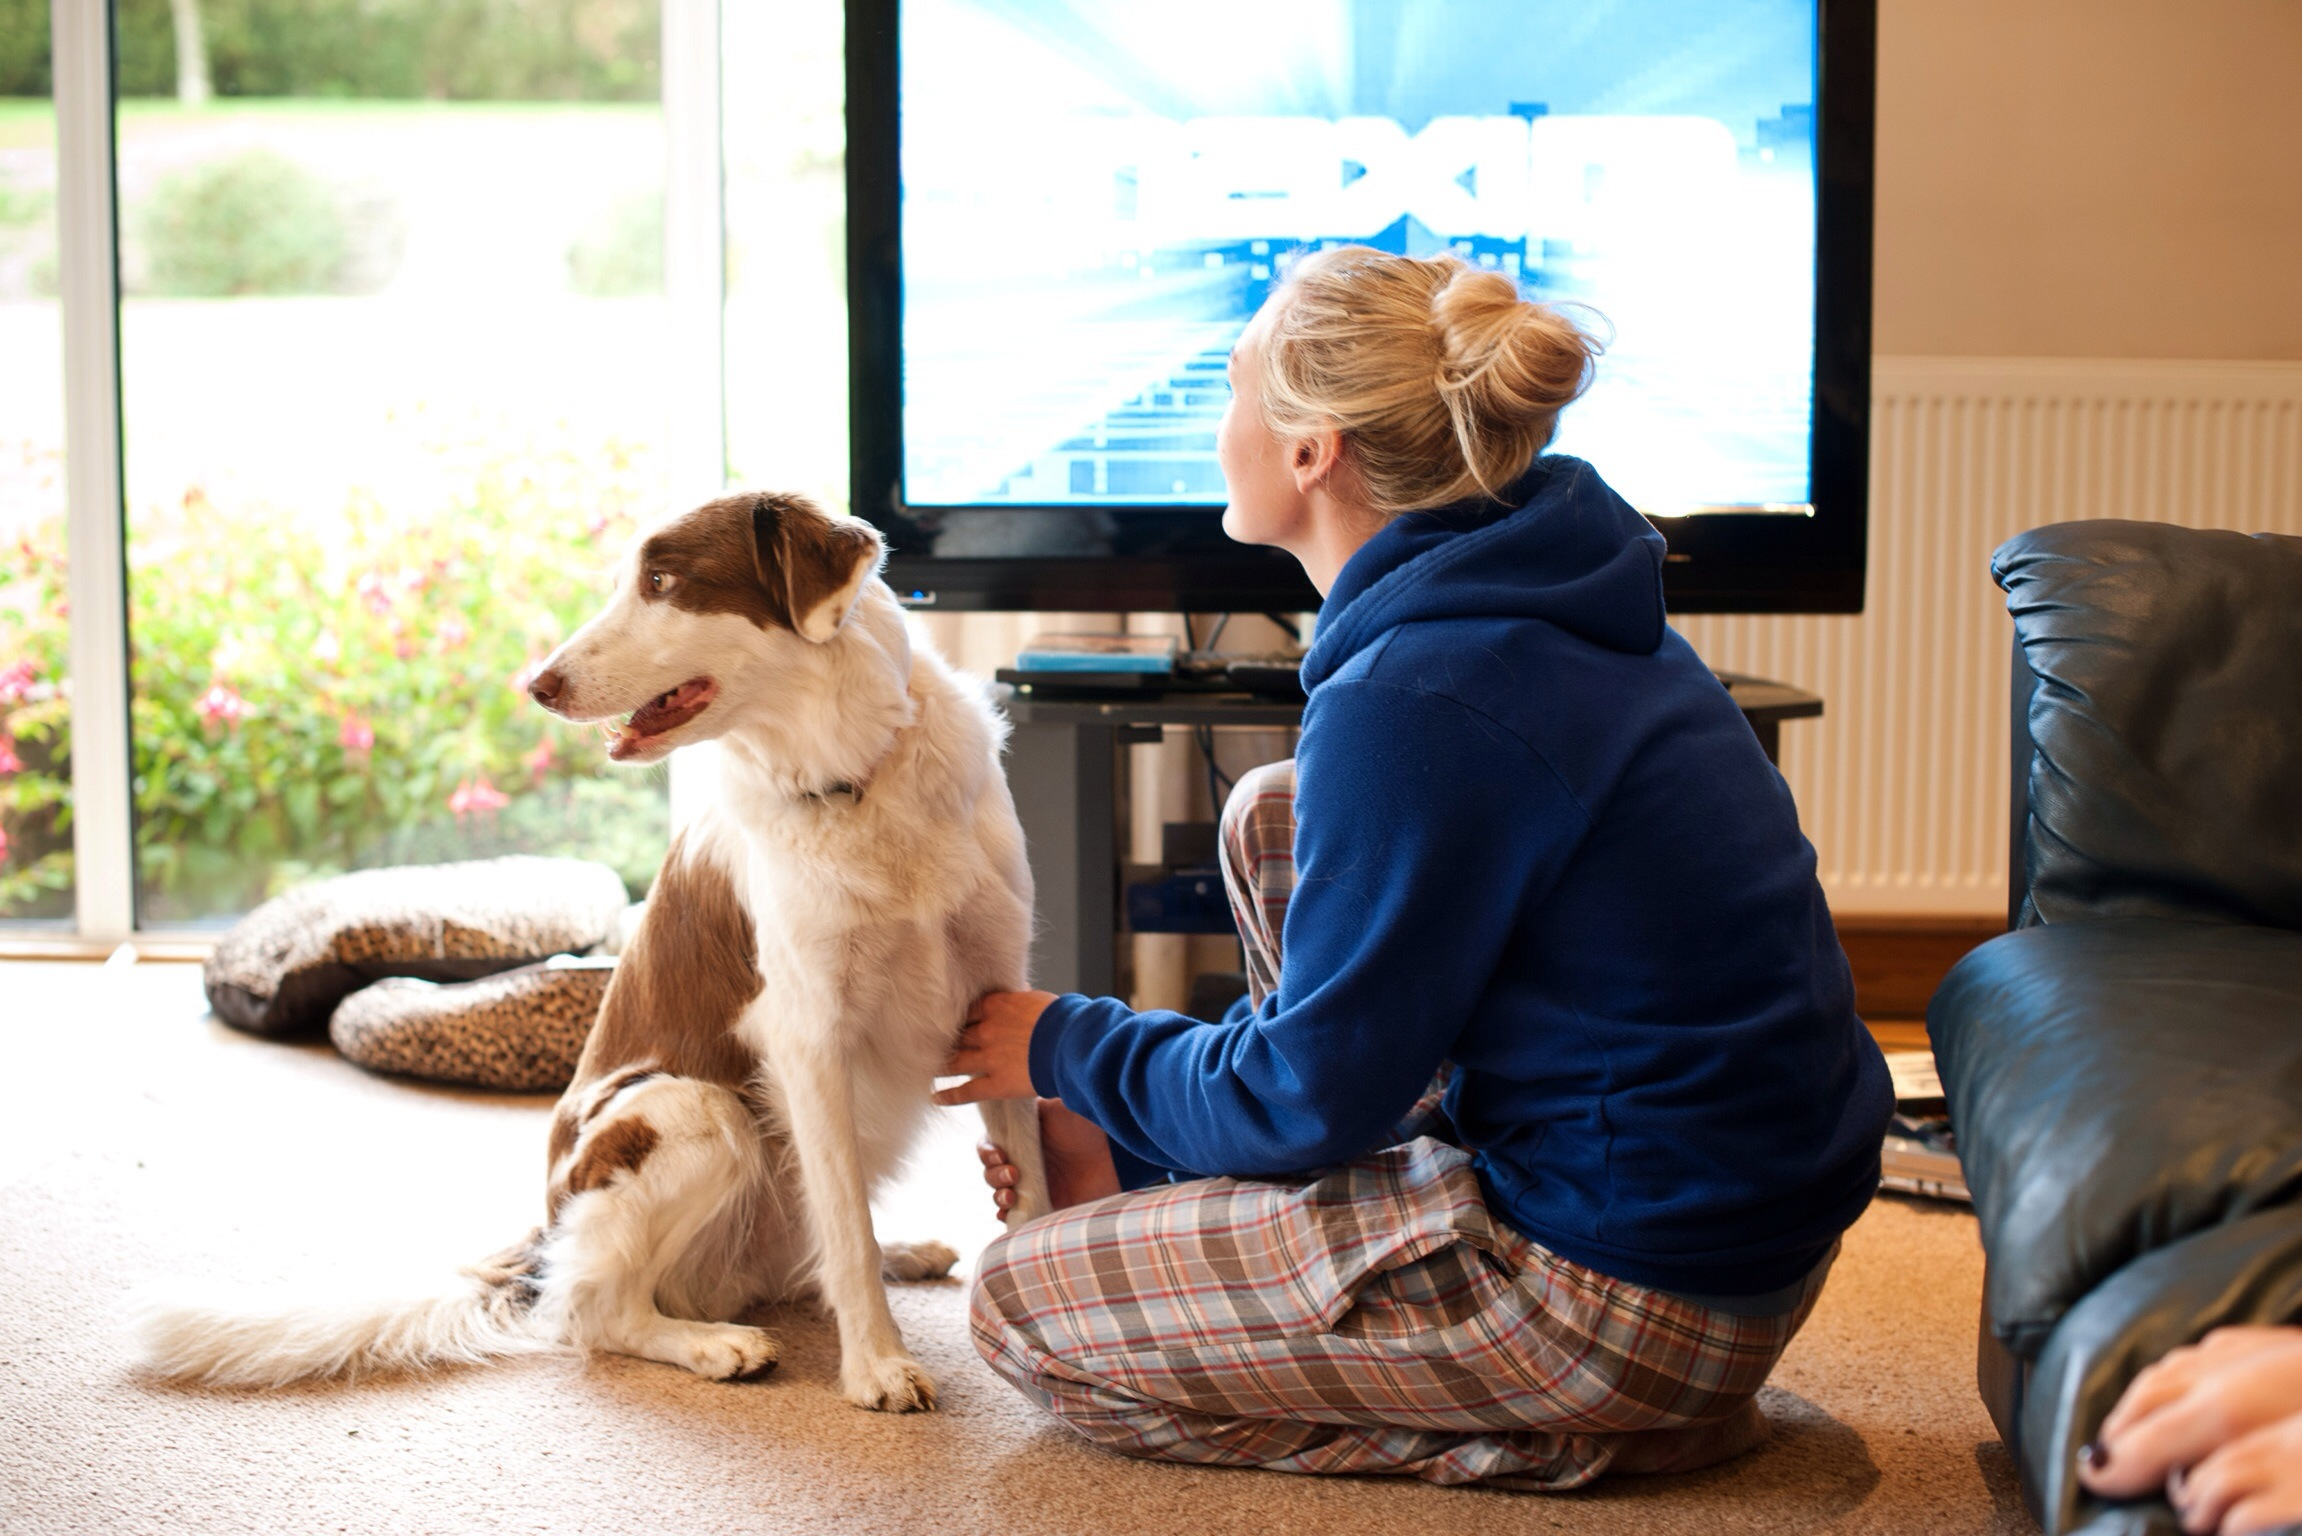 The lovely bride chilling with her dogs and watching movies in her jimjams..I love the honesty of this photo so much.